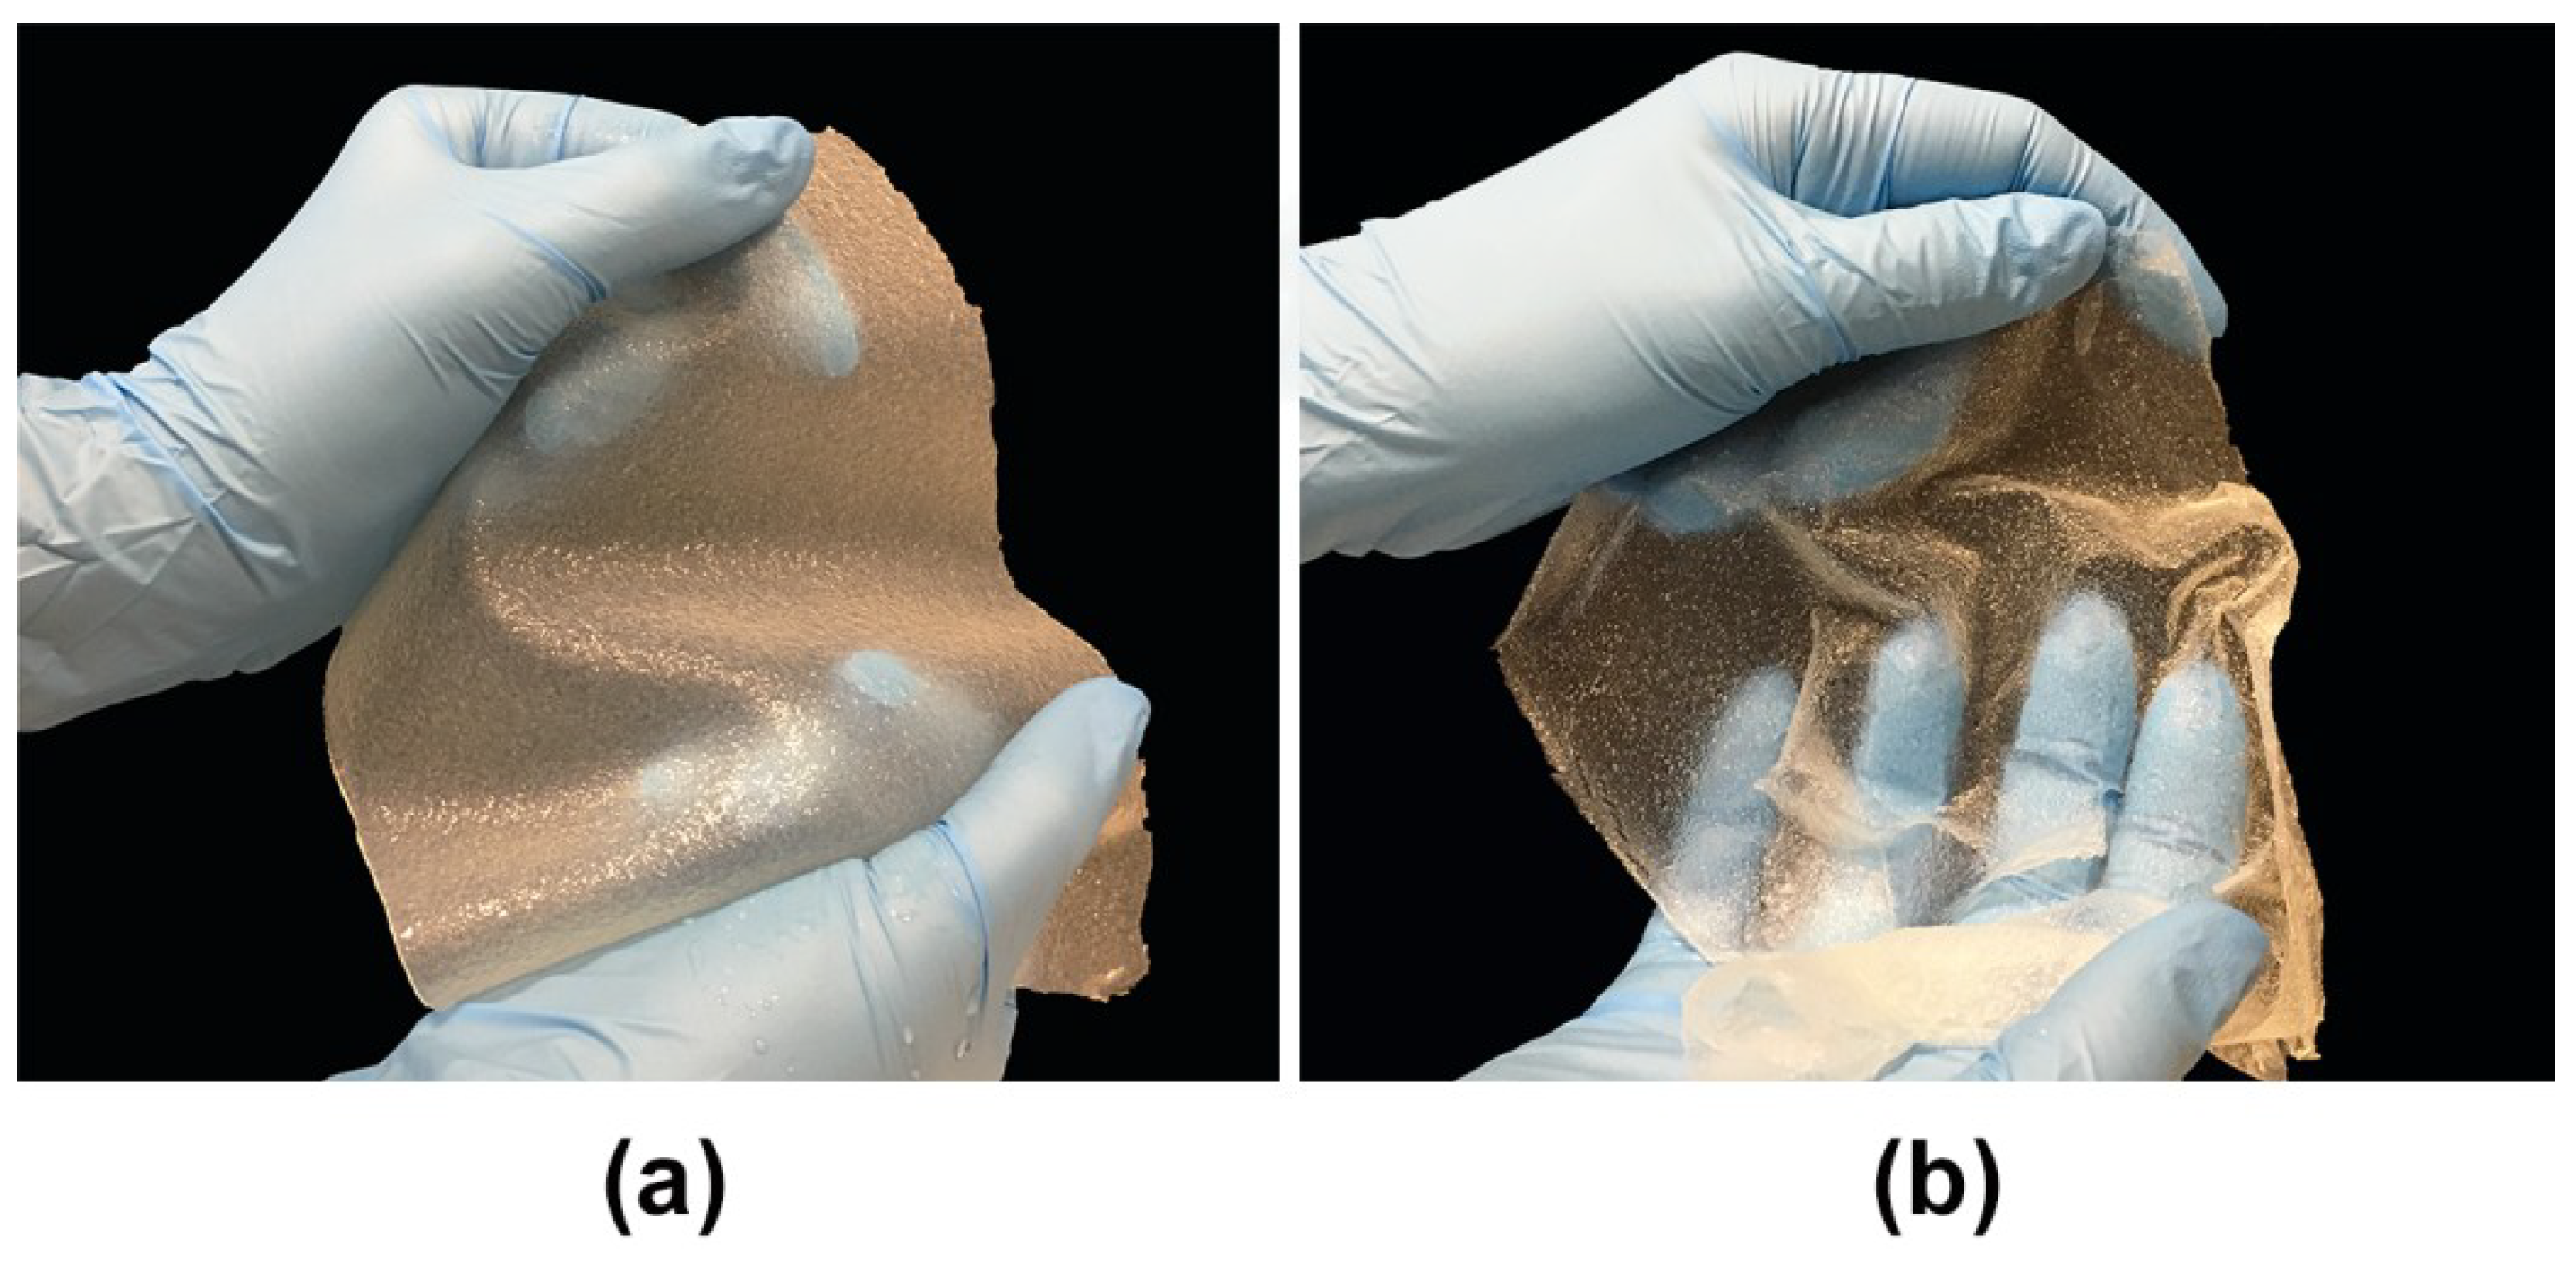 Cells Free Full Text Cellular Response To Vitamin C Enriched Chitosan Agarose Film With Potential Application As Artificial Skin Substitute For Chronic Wound Treatment Html